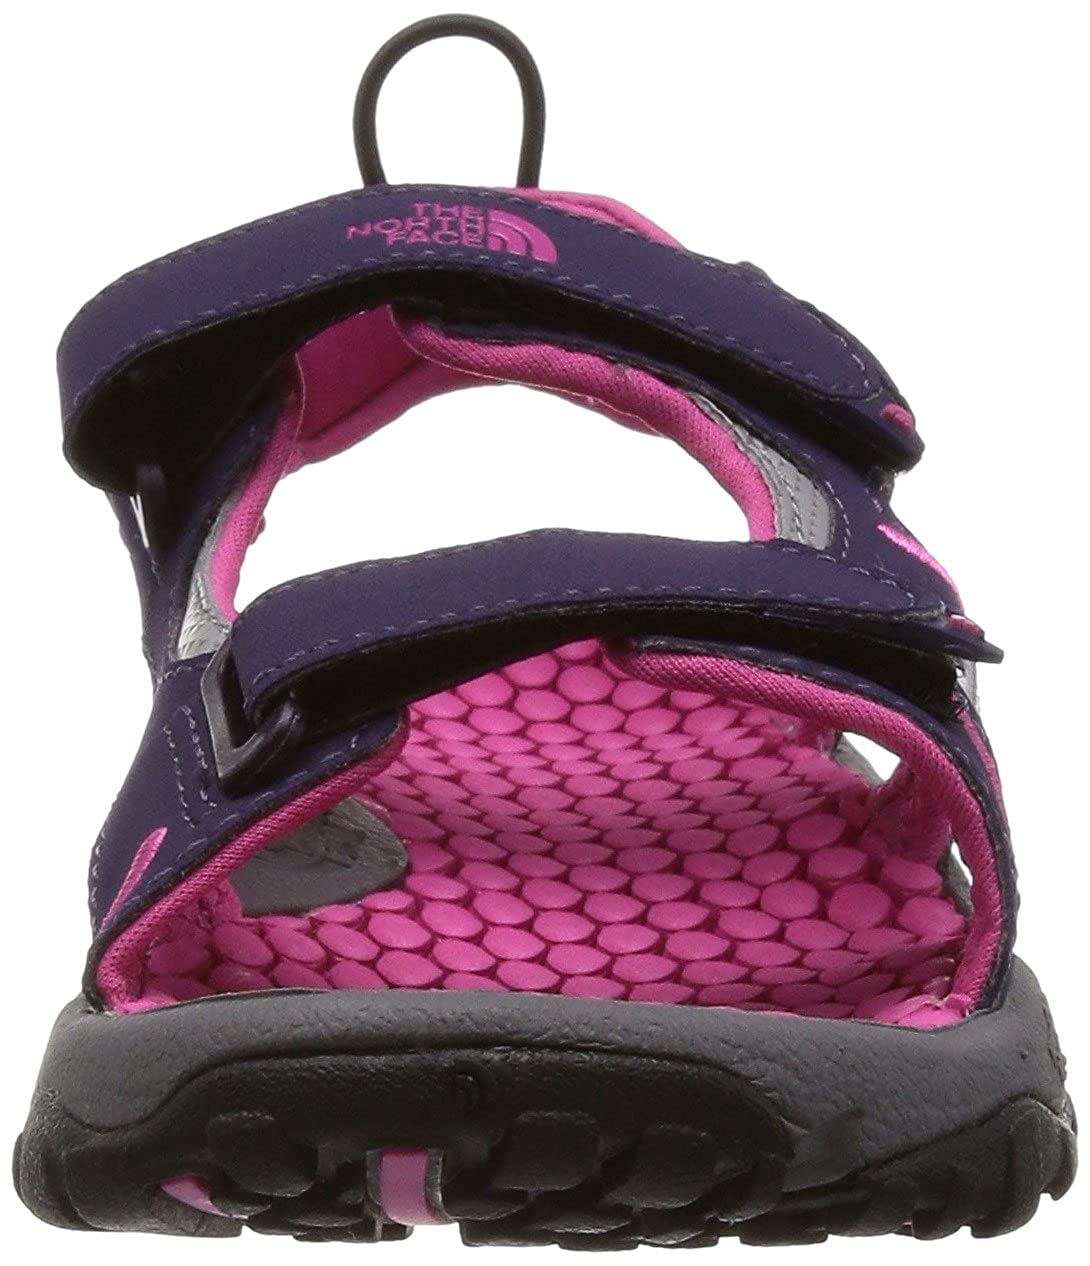 THE NORTH FACE Hedgehog Unisex-Erwachsene Sandalen Pink Dark Eggplant Purple/Society Pink Sandalen b7a3c8